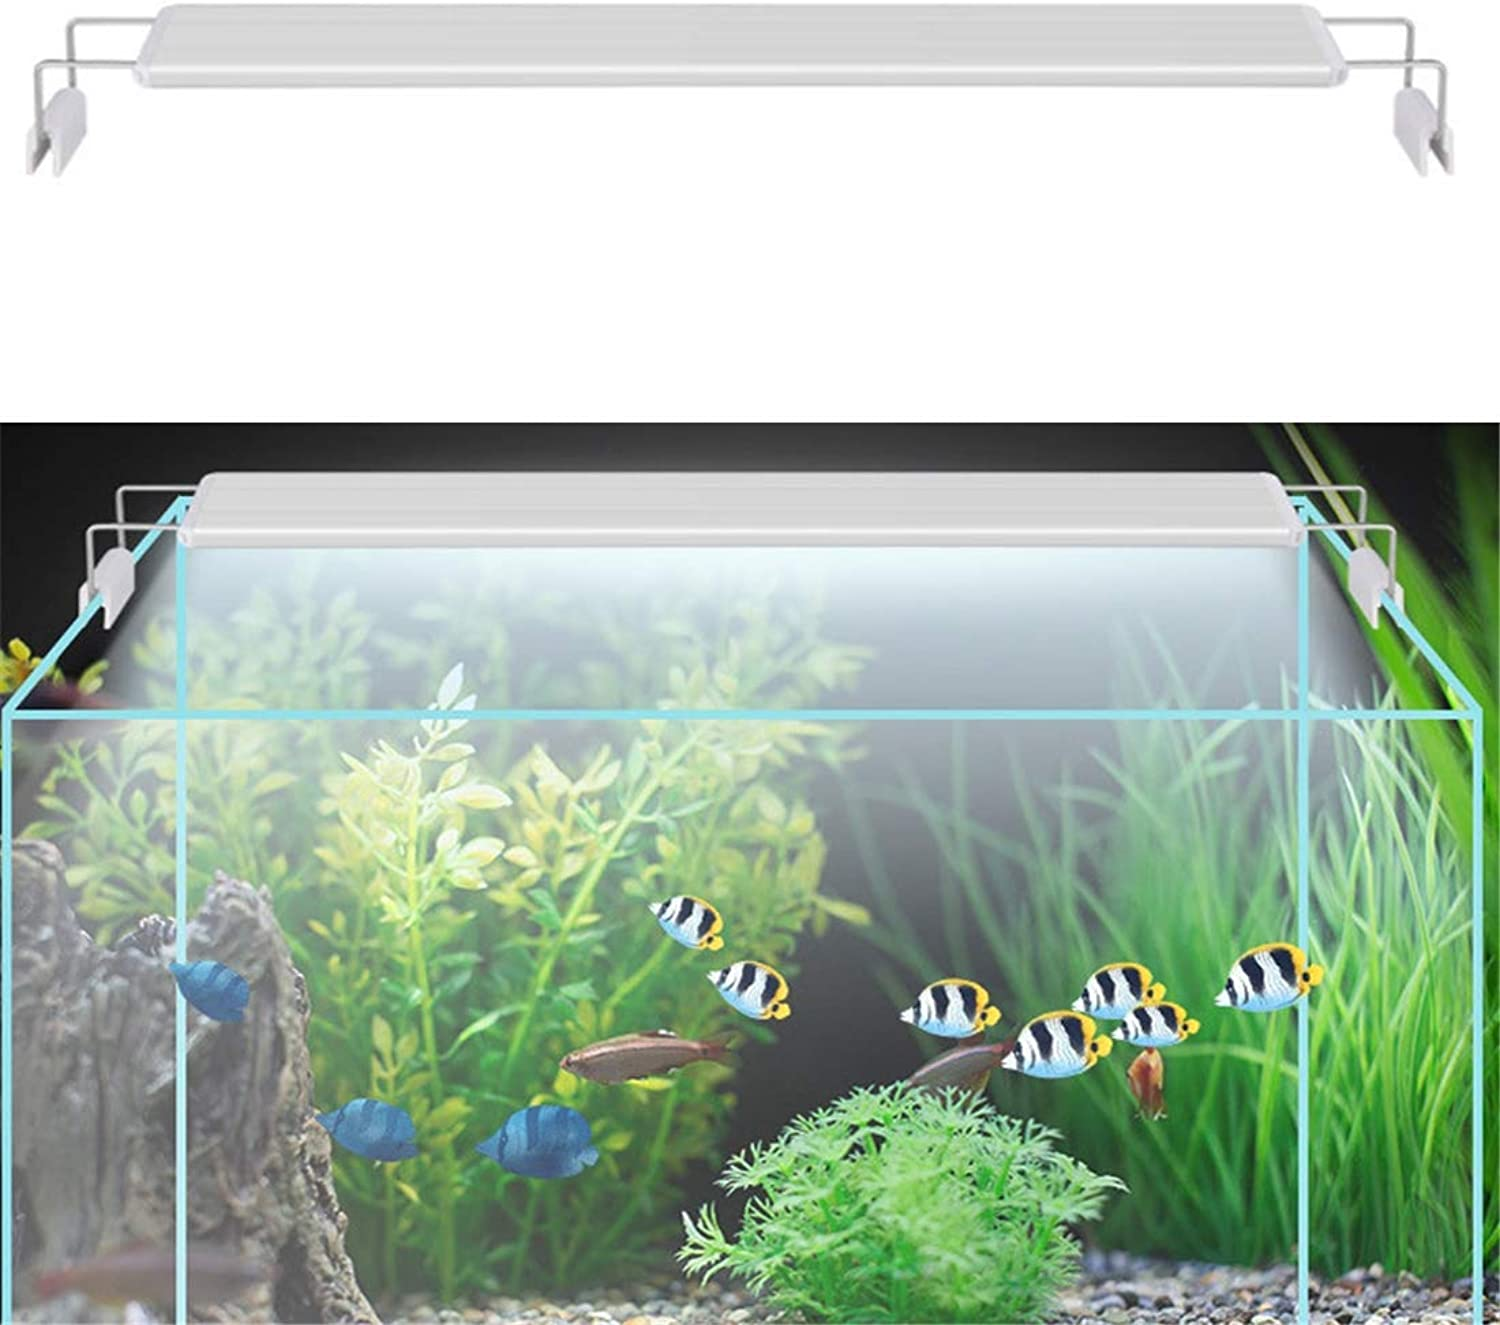 3 Row Fish Tank Clip Light Aquarium LED Light White bluee Lighting with Extendable Brackets,6W20CM